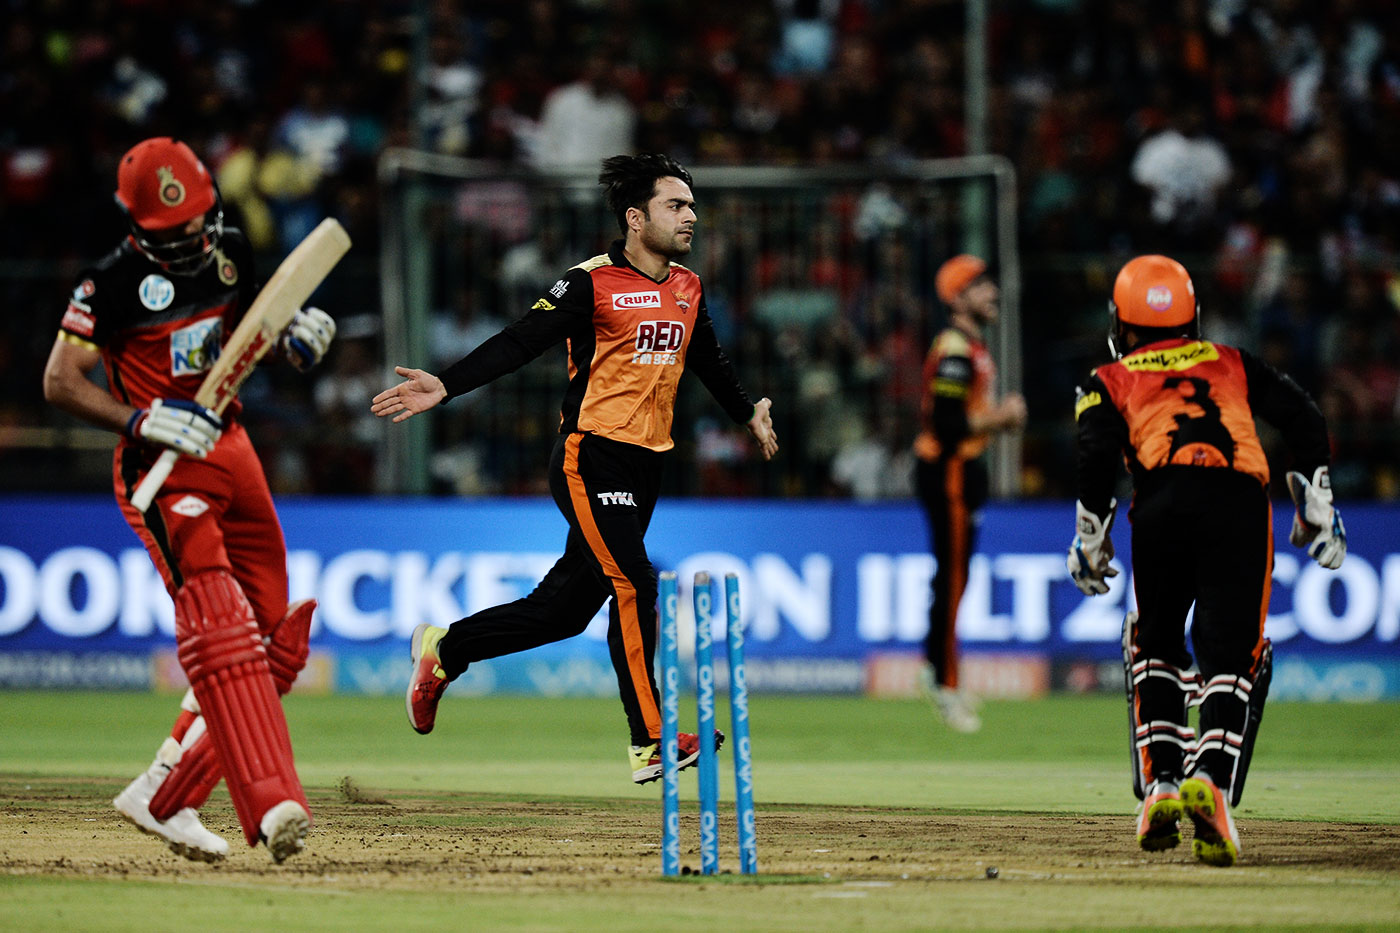 Rashid Khan celebrates the wicket of Virat Kohli